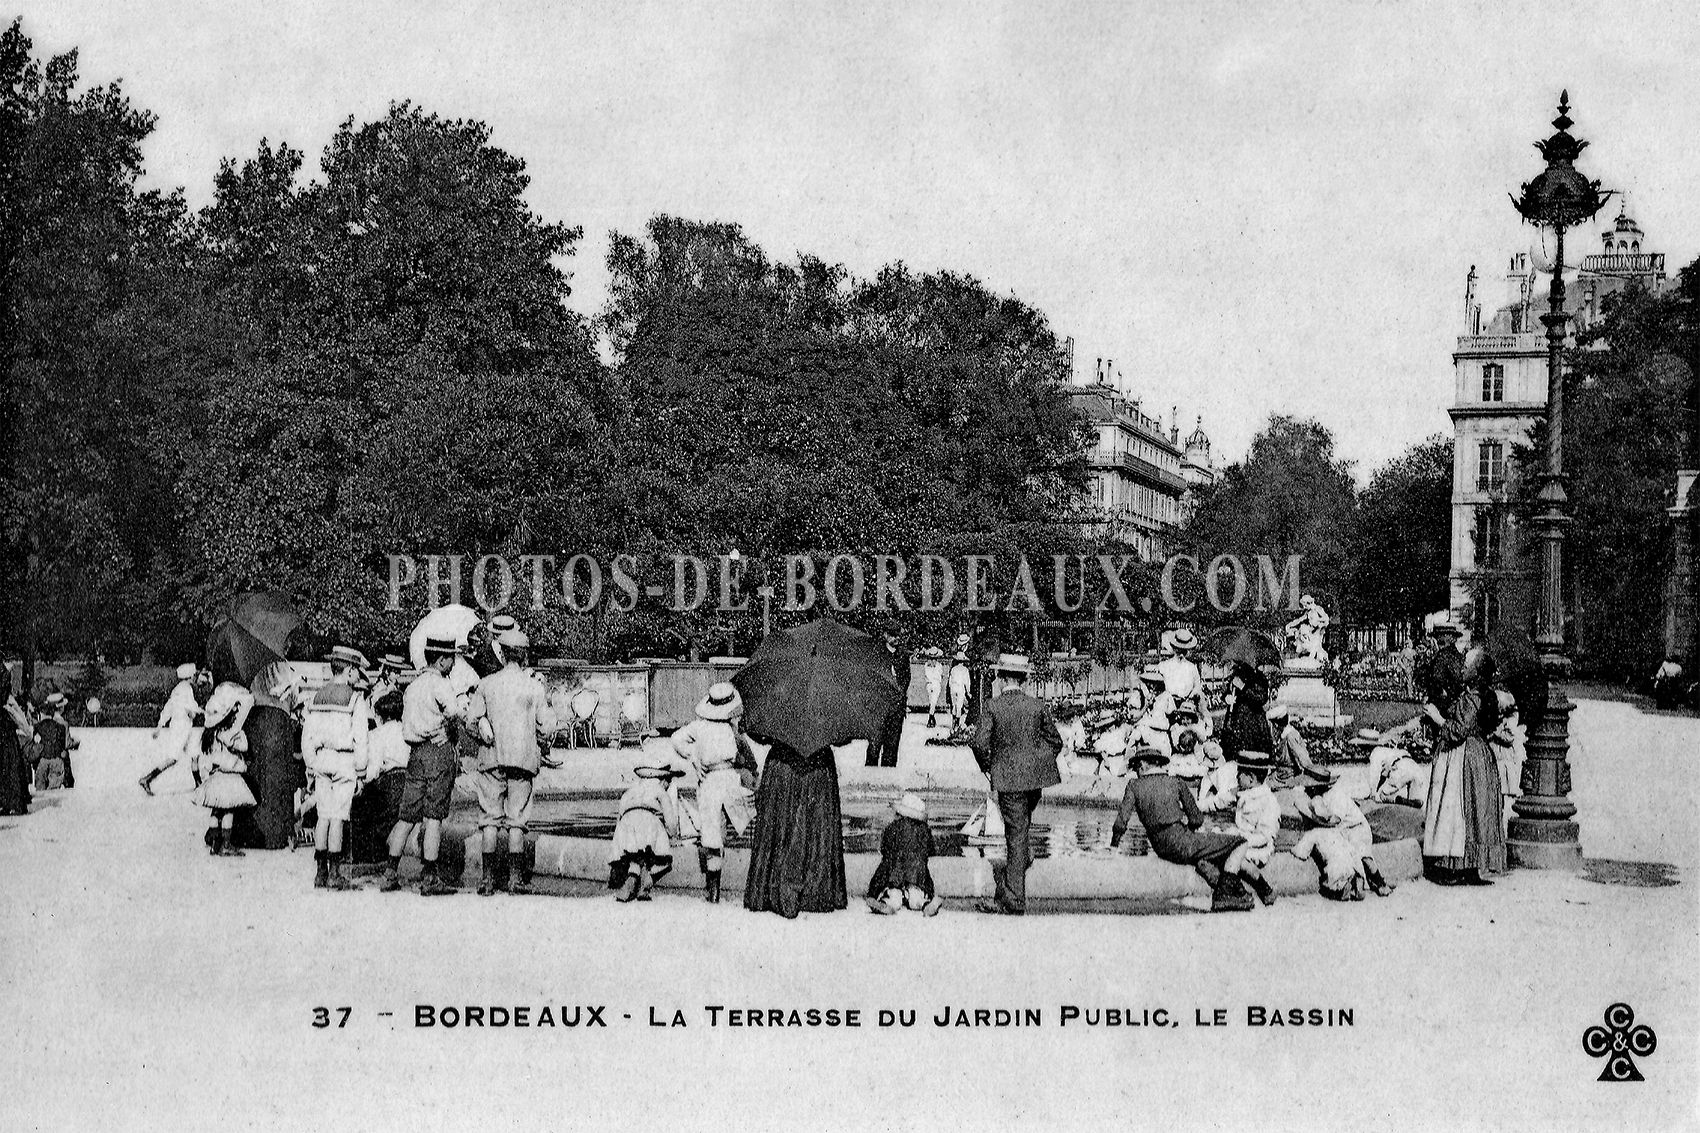 La Terrasse Du Jardin La Terrasse Du Jardin Public Le Bassin Poster 30x20cm